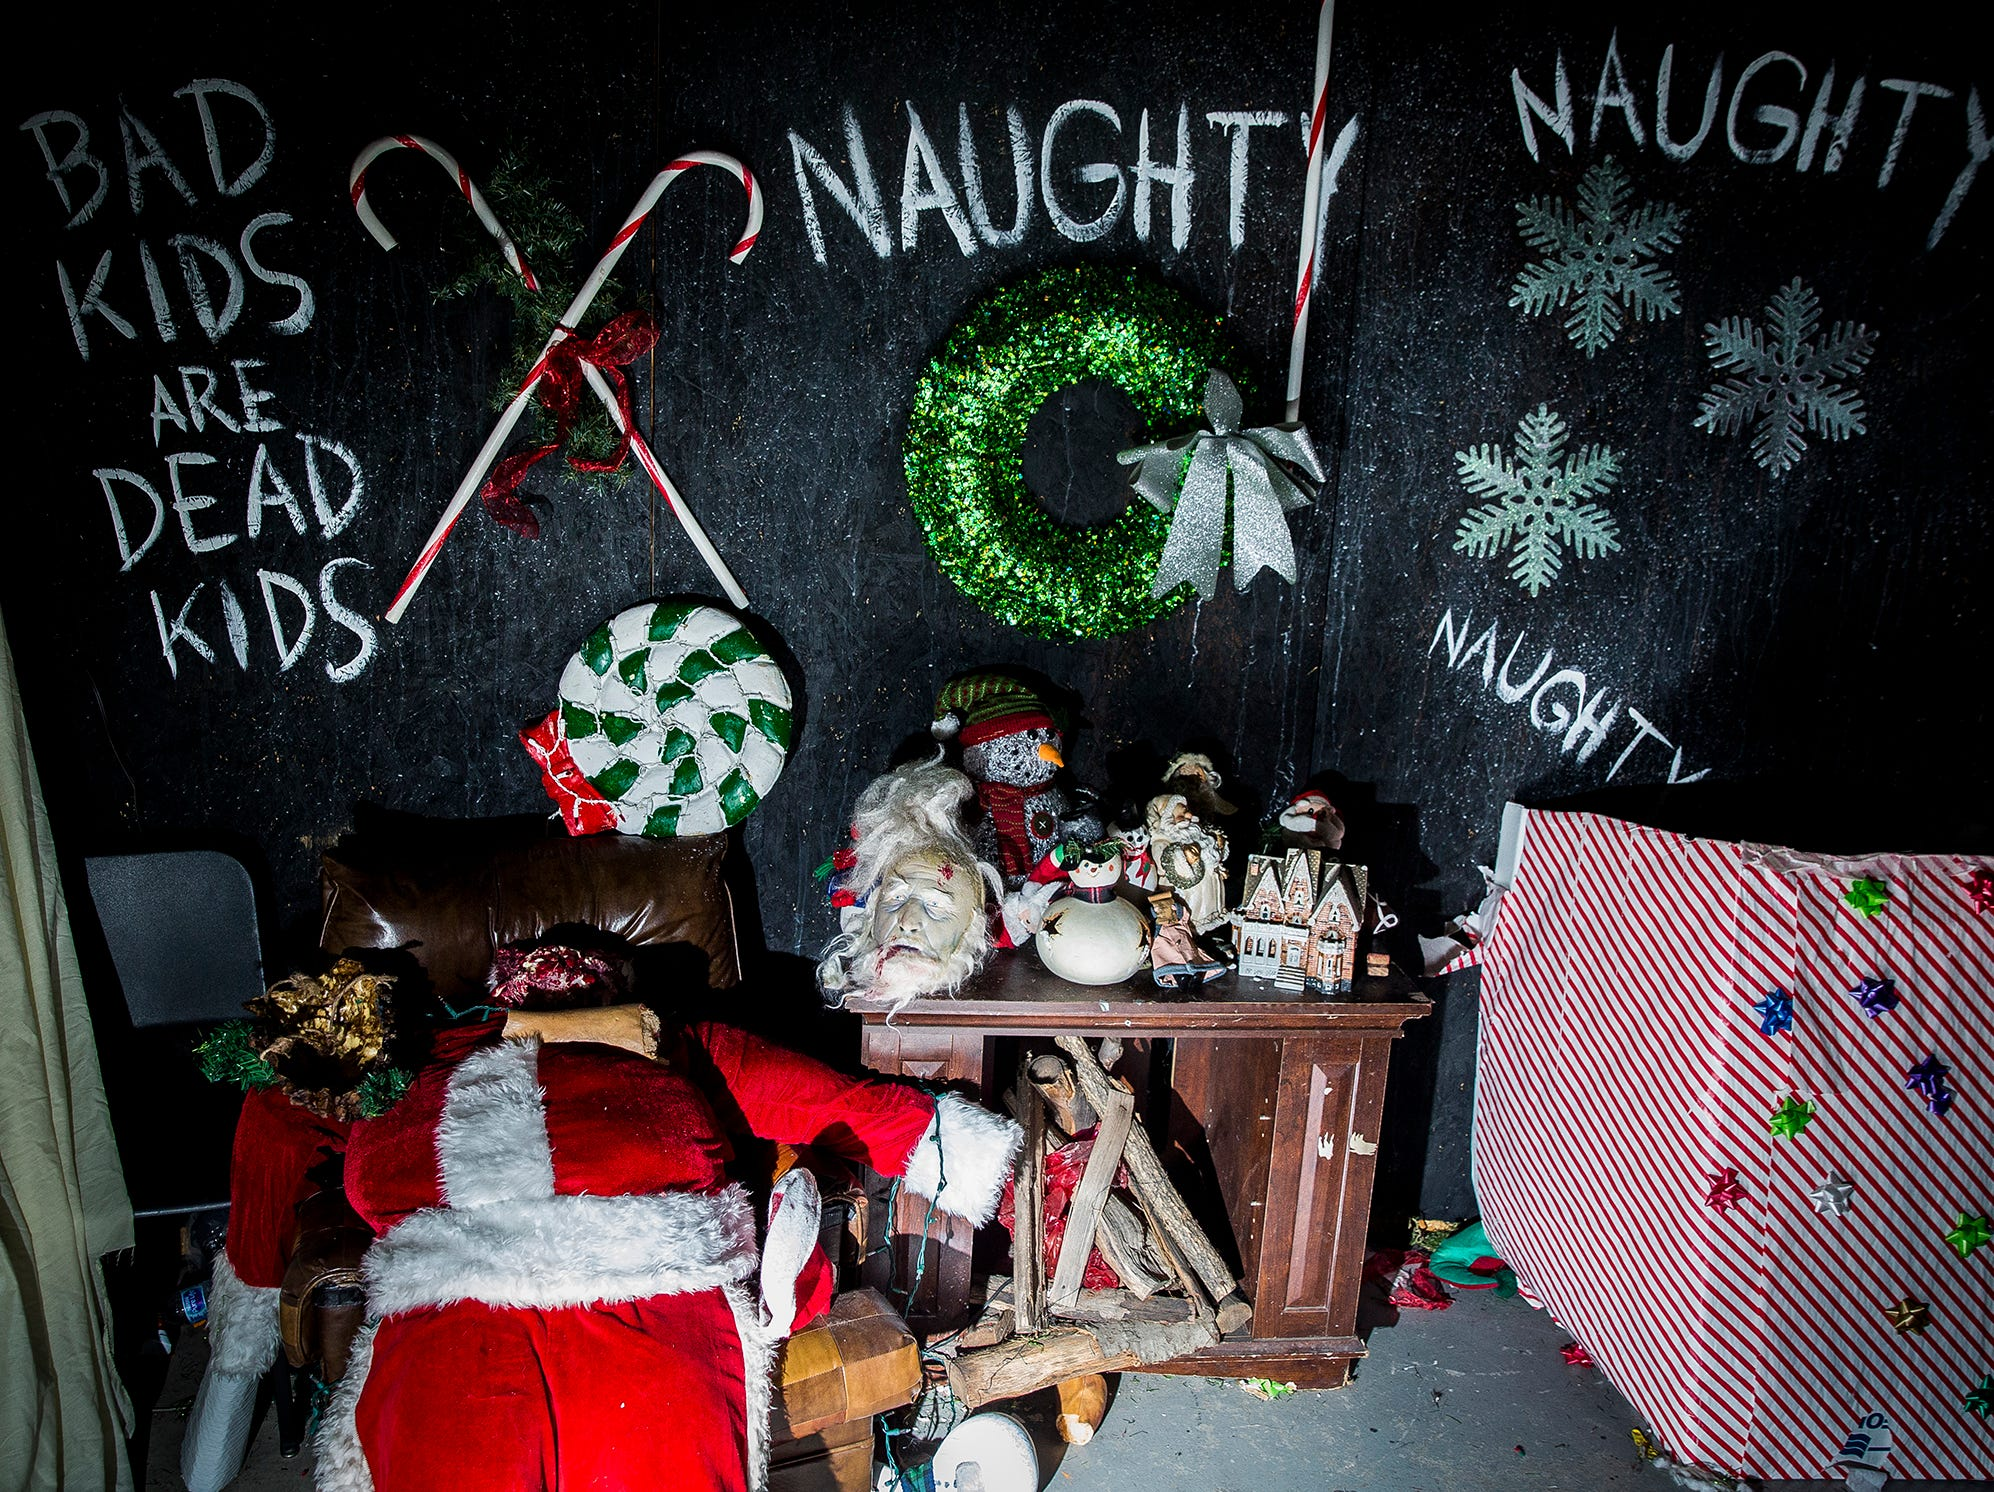 Cornerstone's Christmas Scarol haunted house, which opens Dec. 15,  will be collecting donations for the Muncie Animal Care and Services facility.